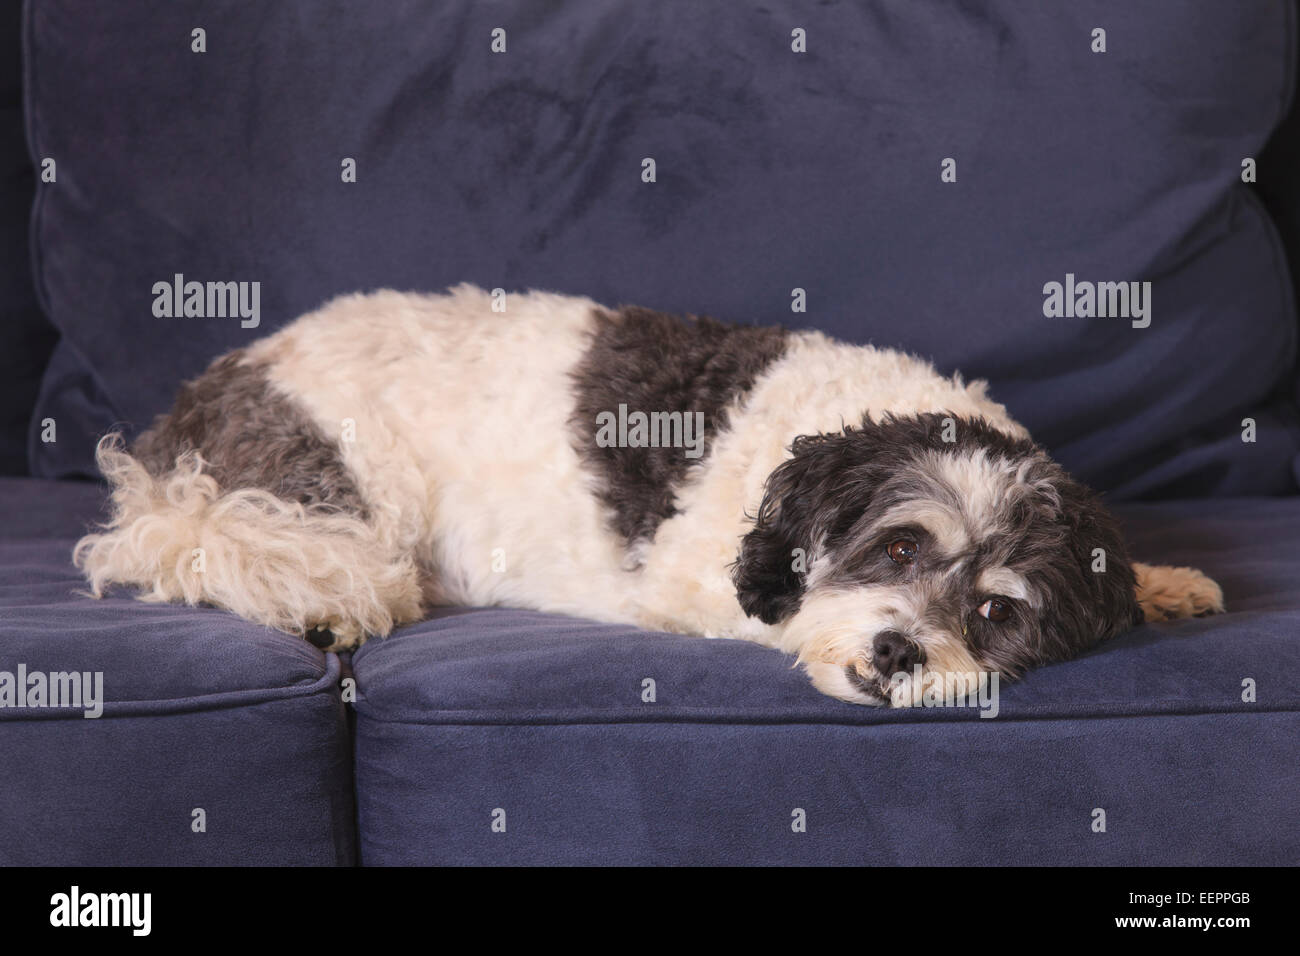 Service Dog resting on couch - Stock Image